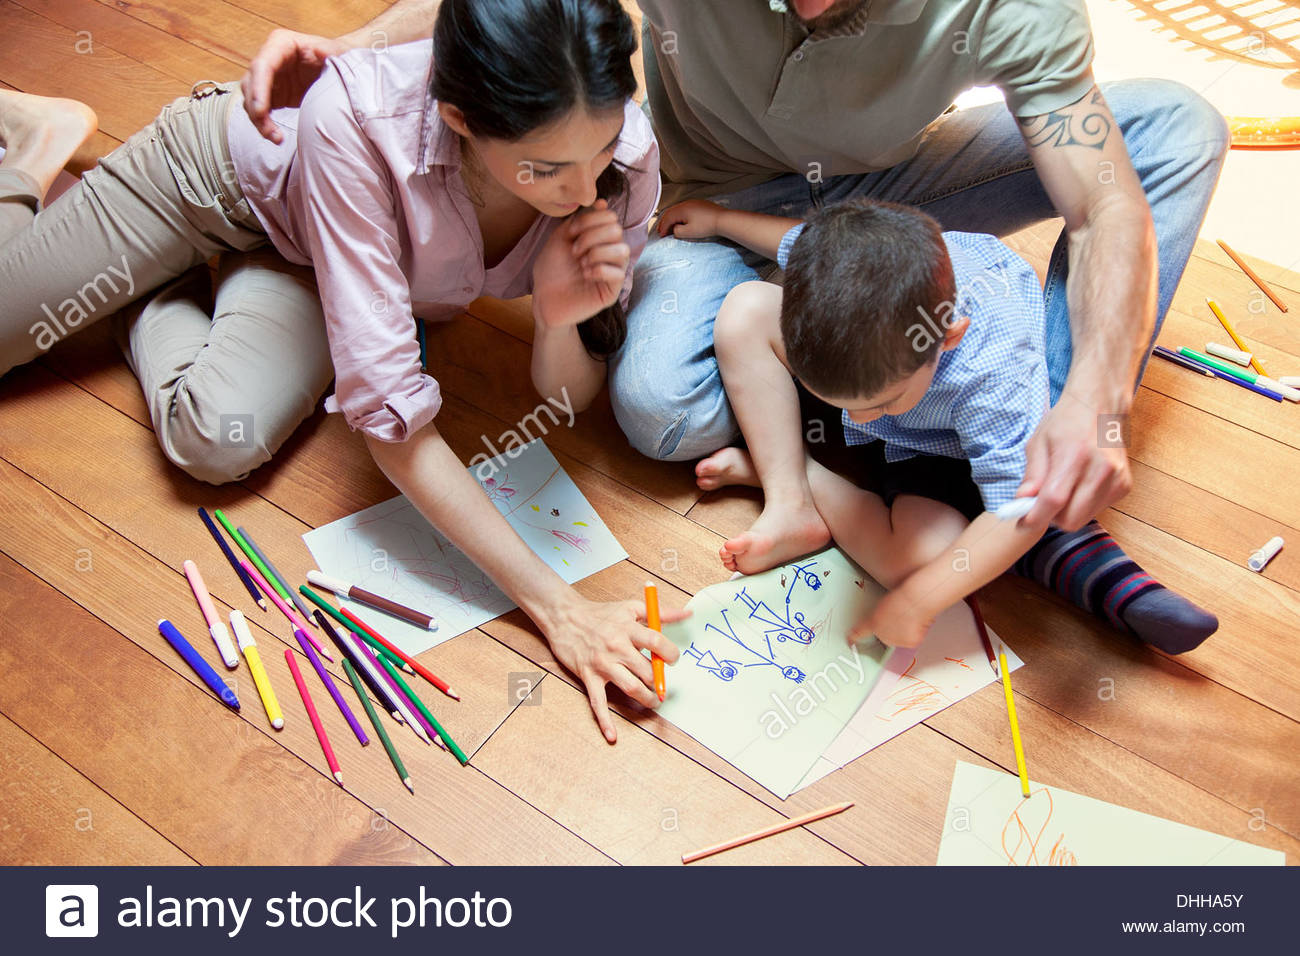 Boy sitting on floor drawing with parents - Stock Image